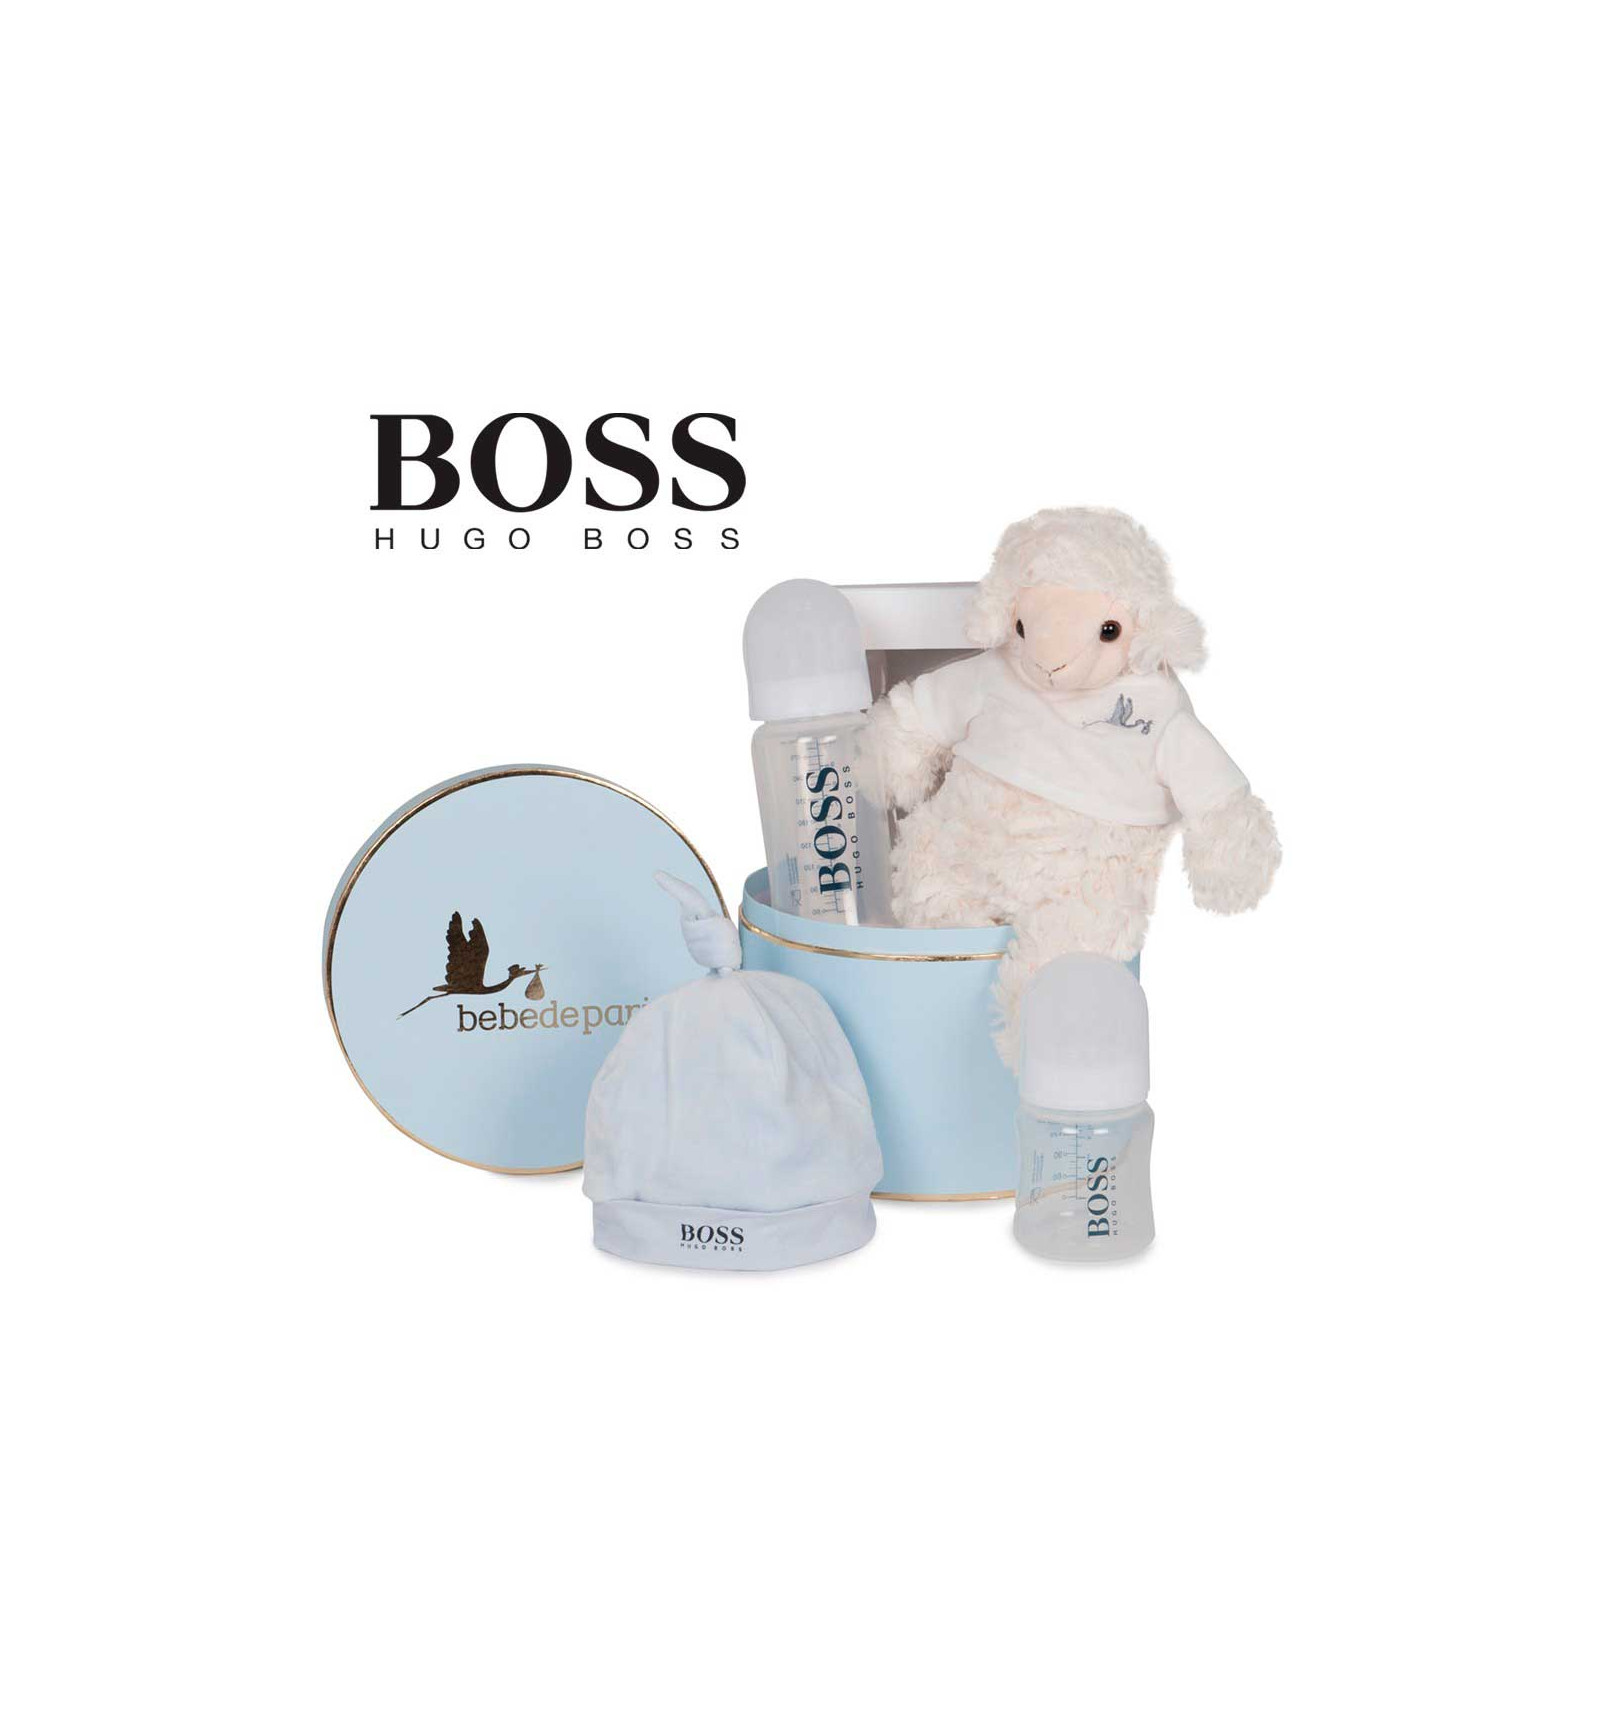 canastilla beb hugo boss gorrito beb de par s. Black Bedroom Furniture Sets. Home Design Ideas